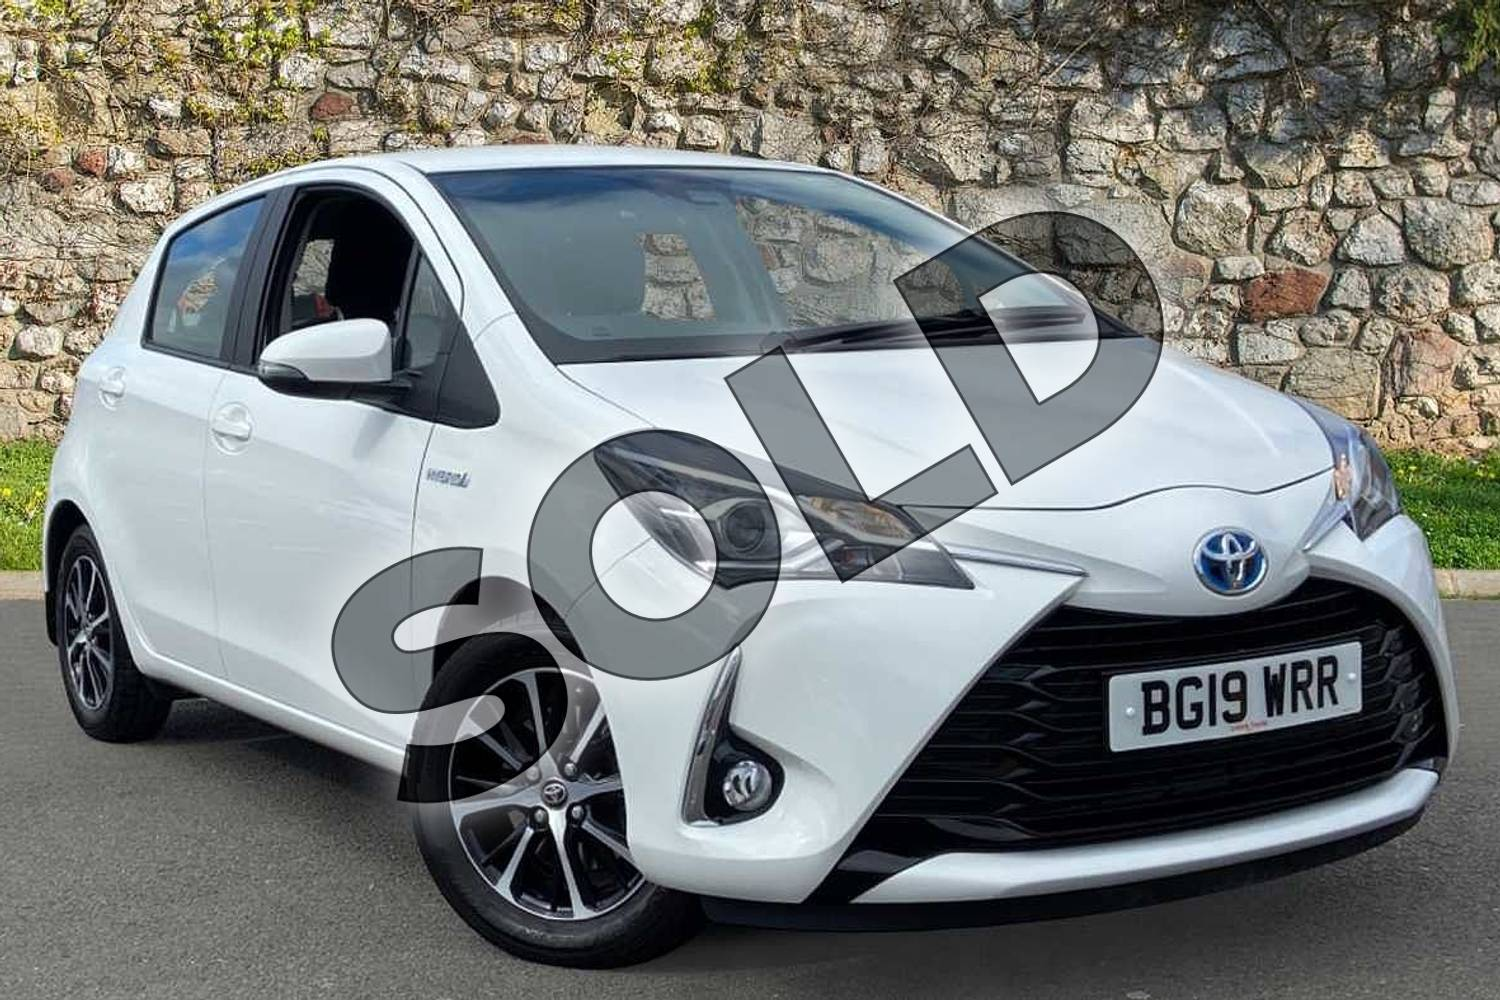 2019 Toyota Yaris Hatchback 1.5 Hybrid Icon Tech 5dr CVT in Pure white at Listers Toyota Coventry